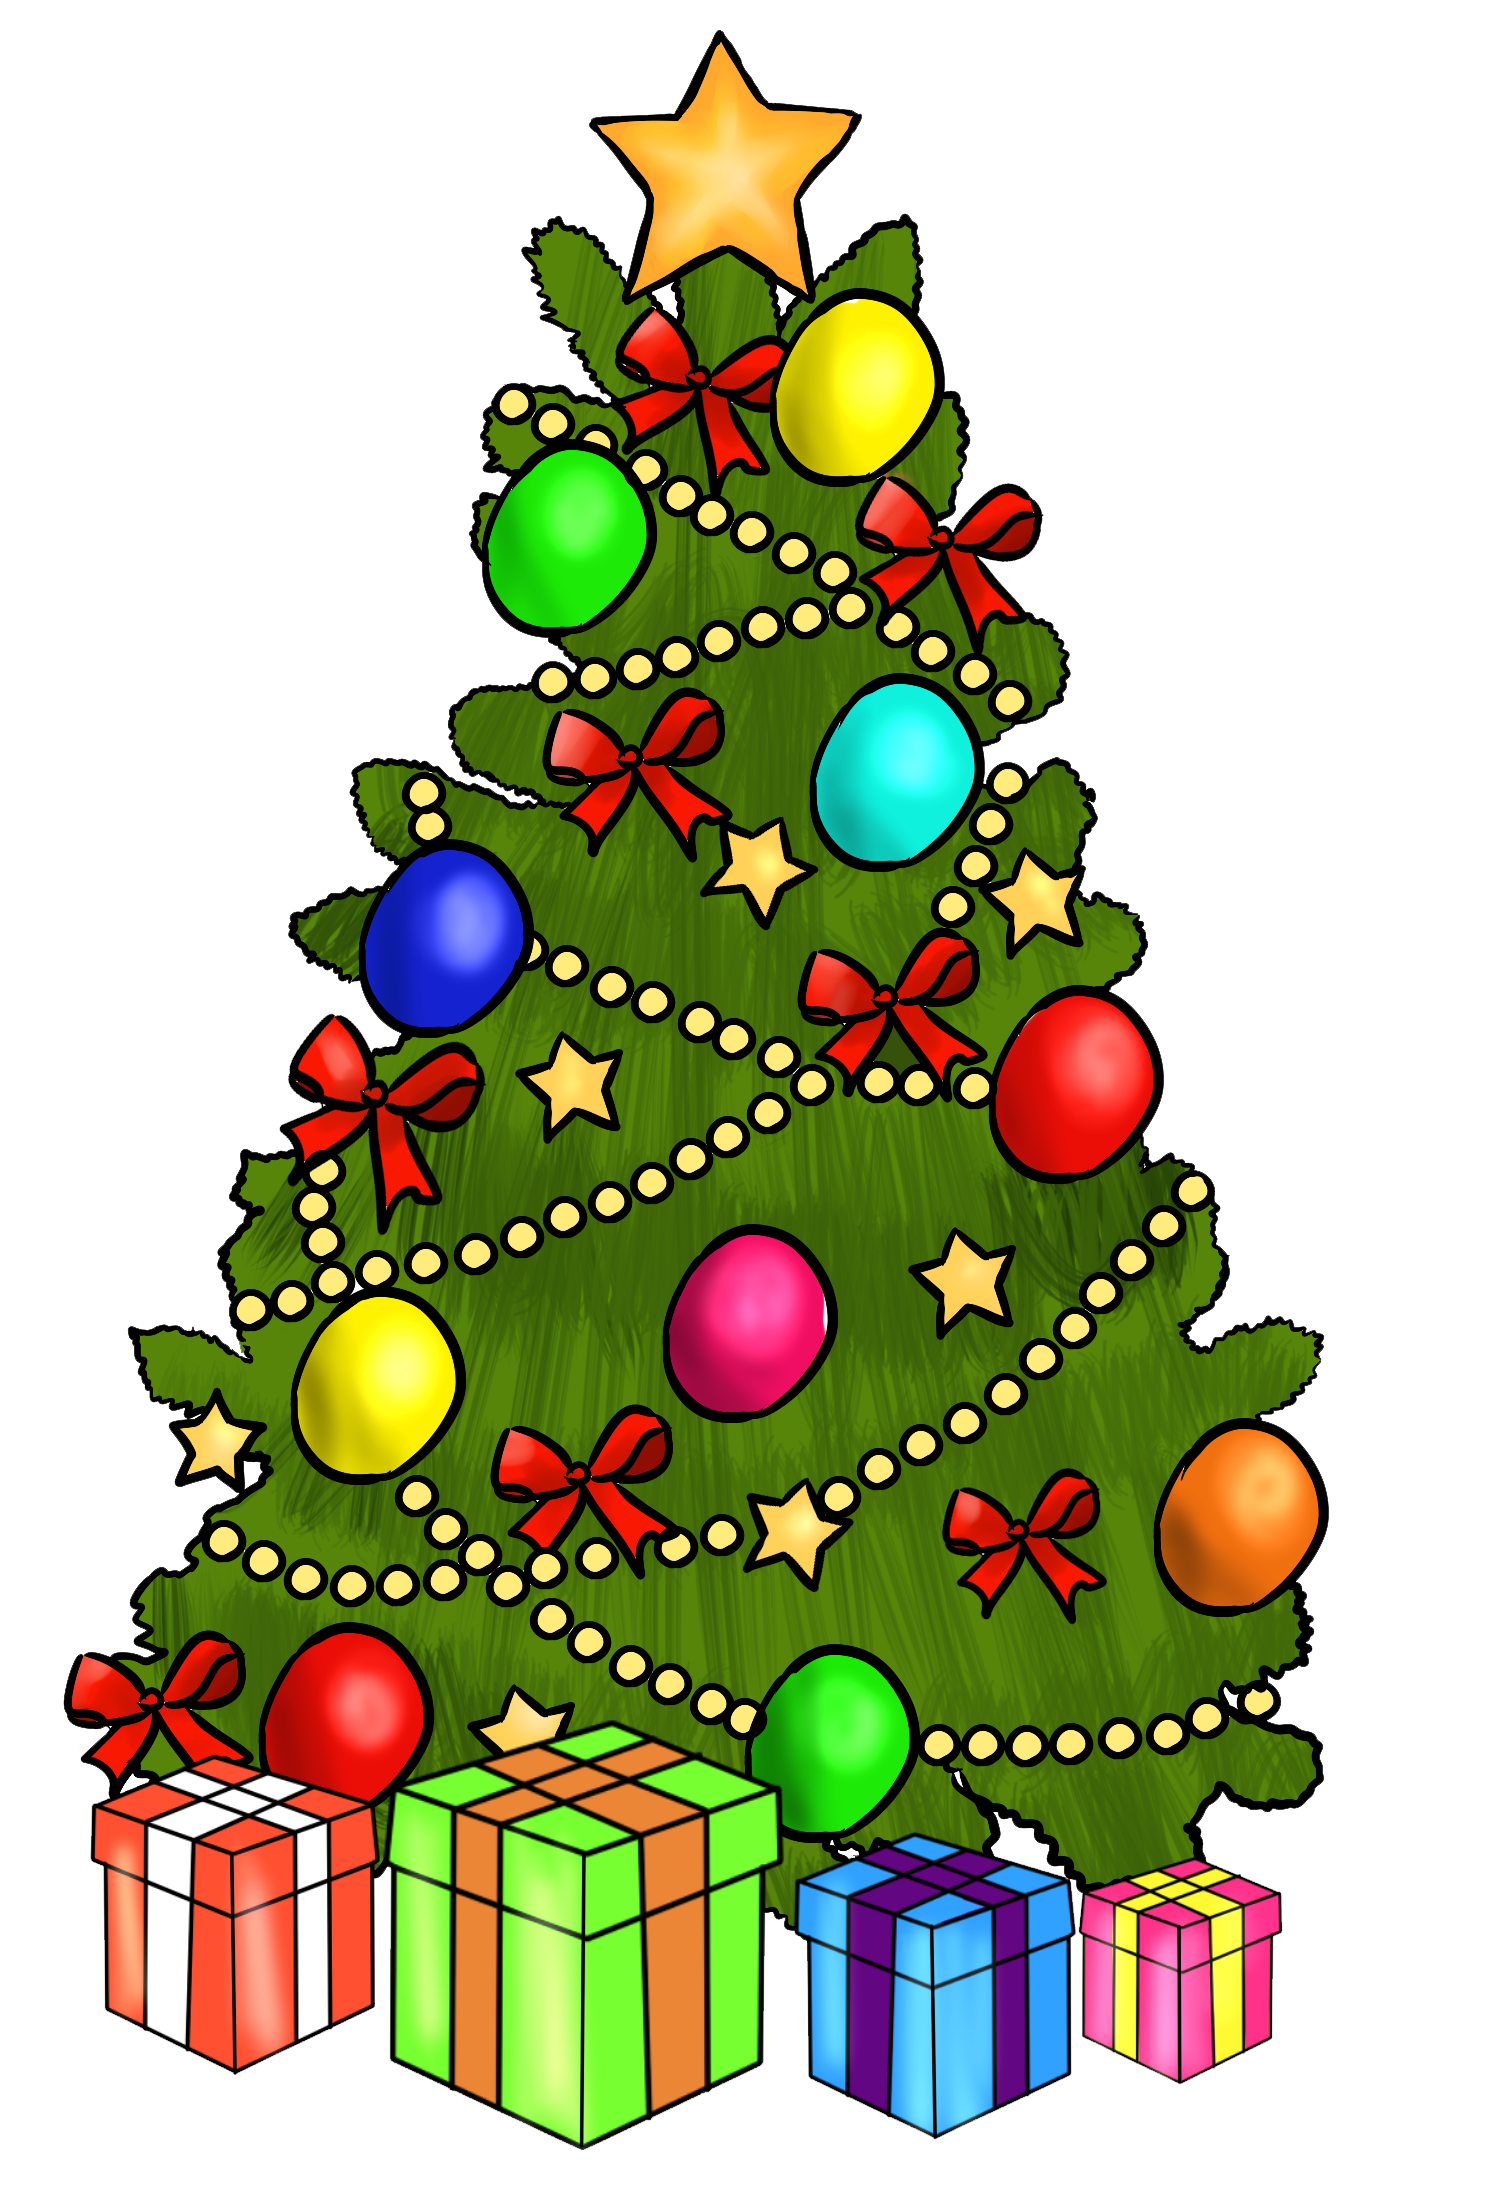 Animated christmas clipart clipart images gallery for free download.